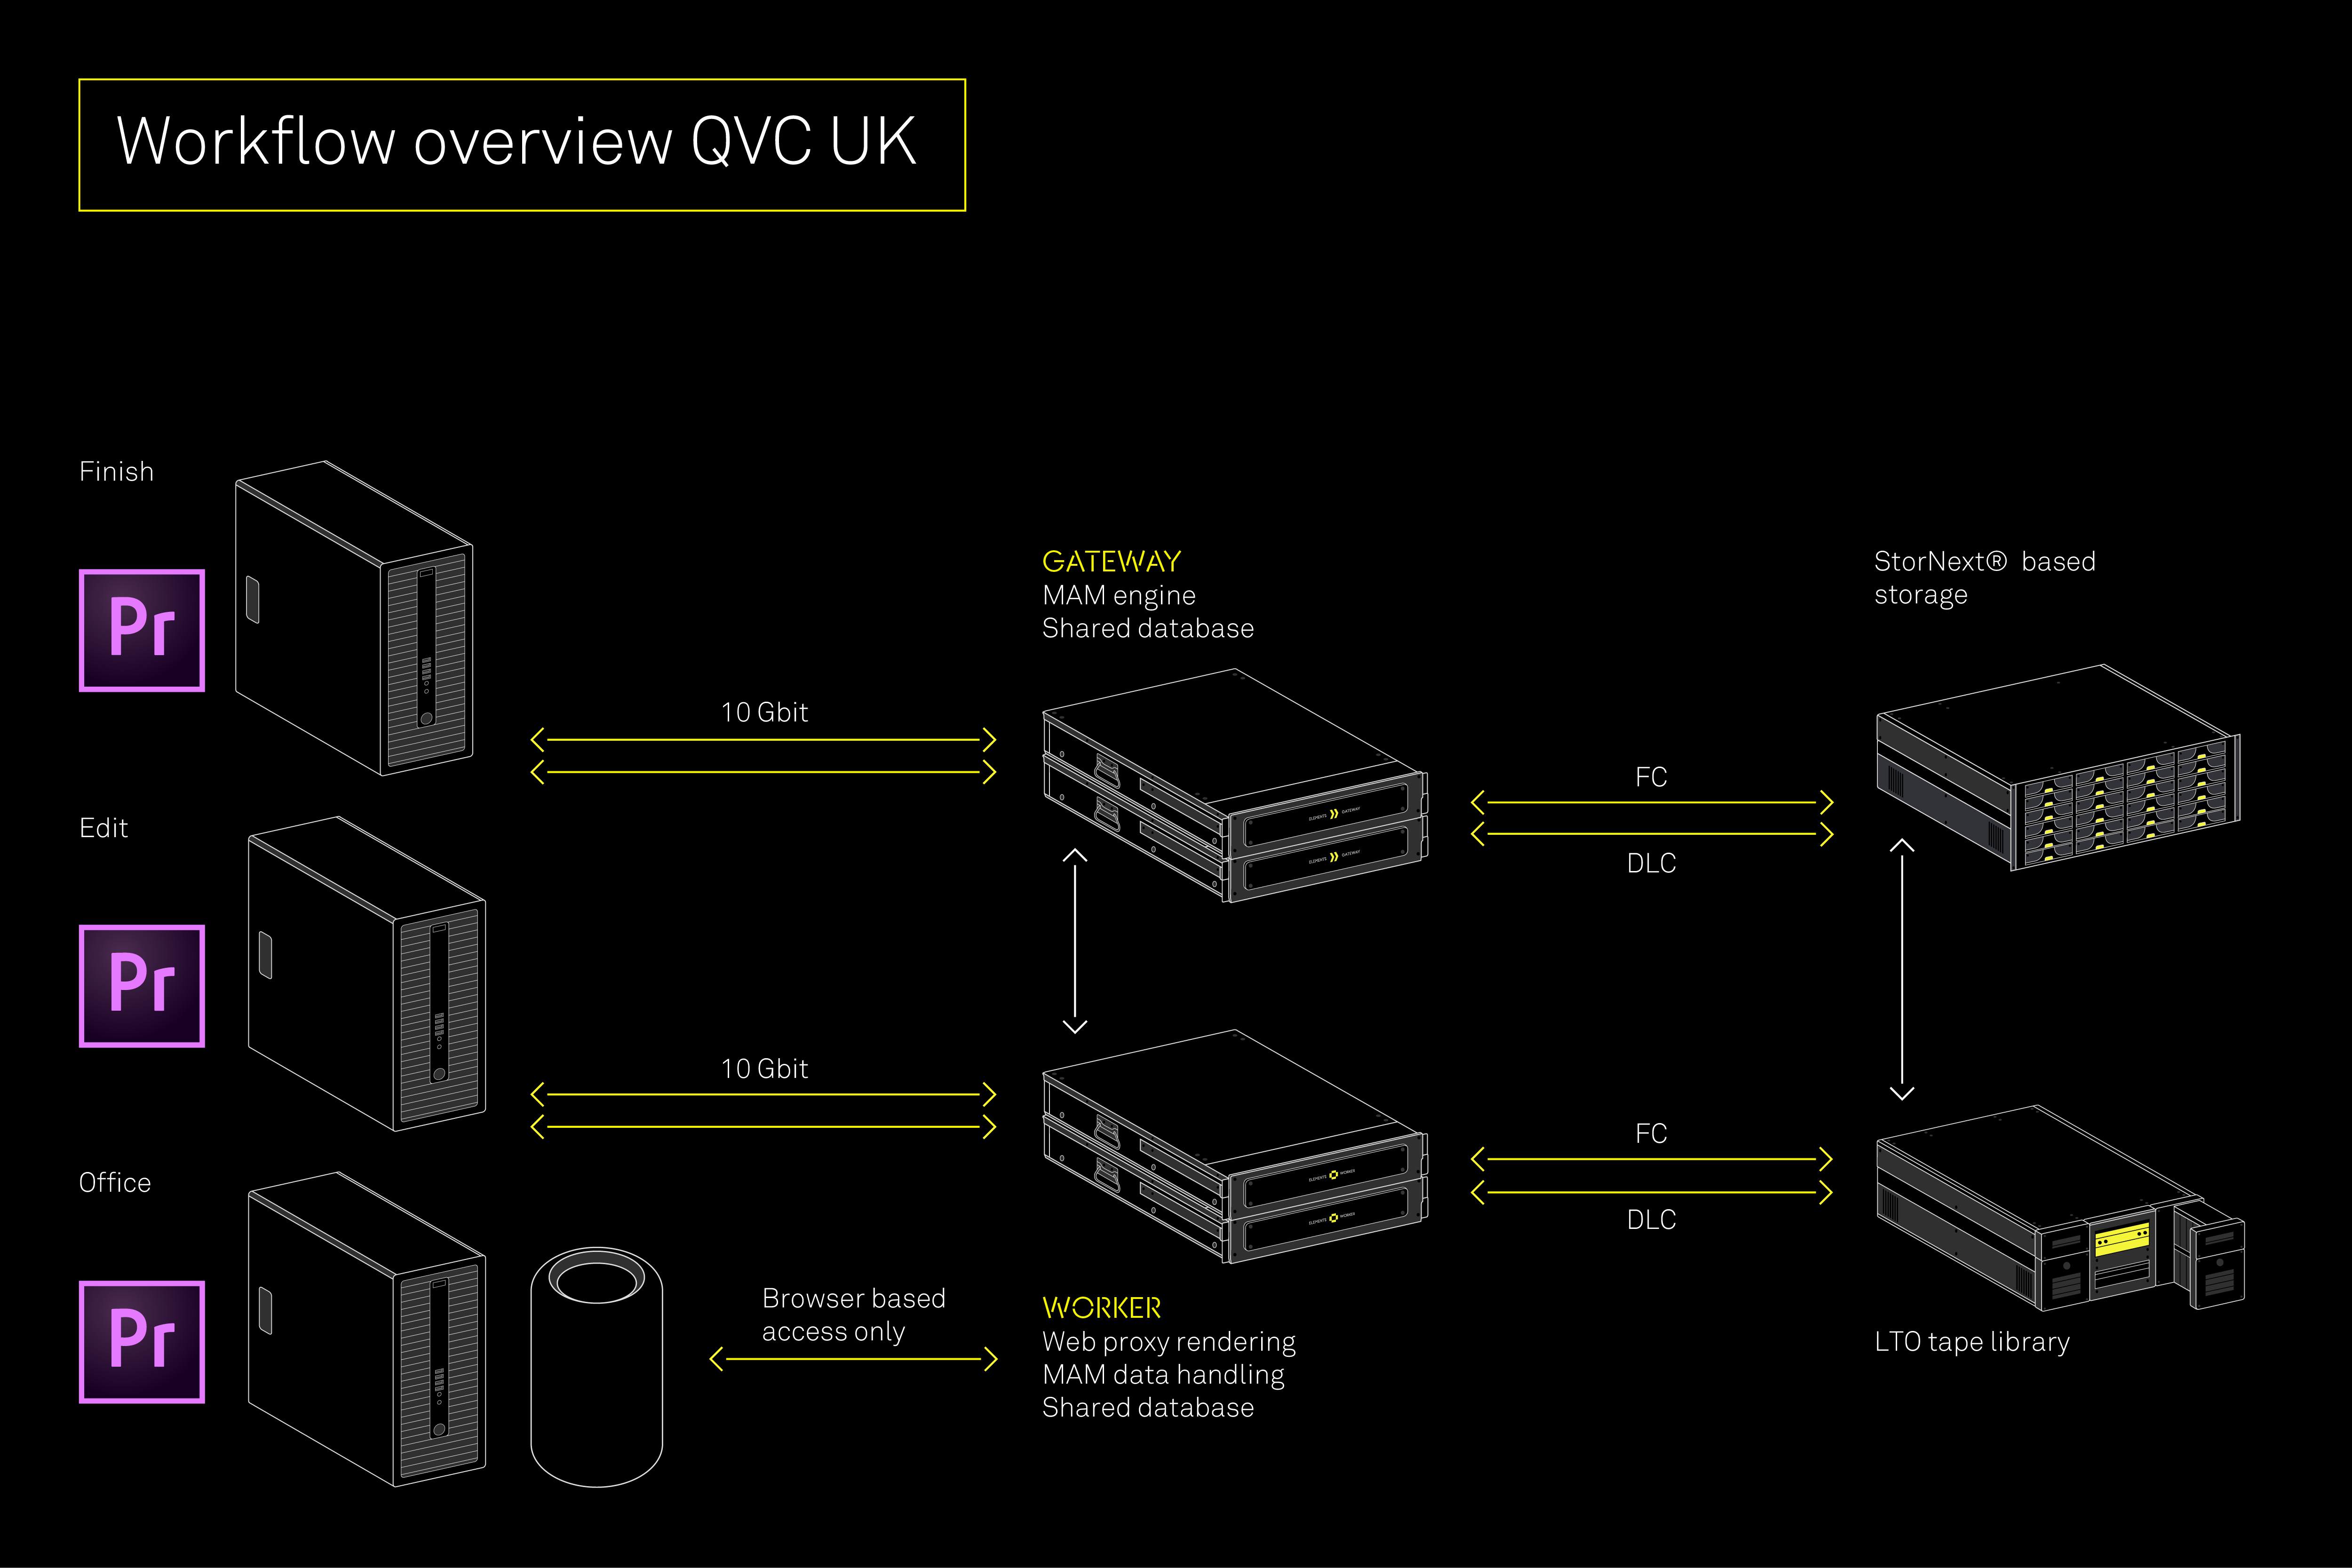 ELEMENTS at QVC Workflow Overview